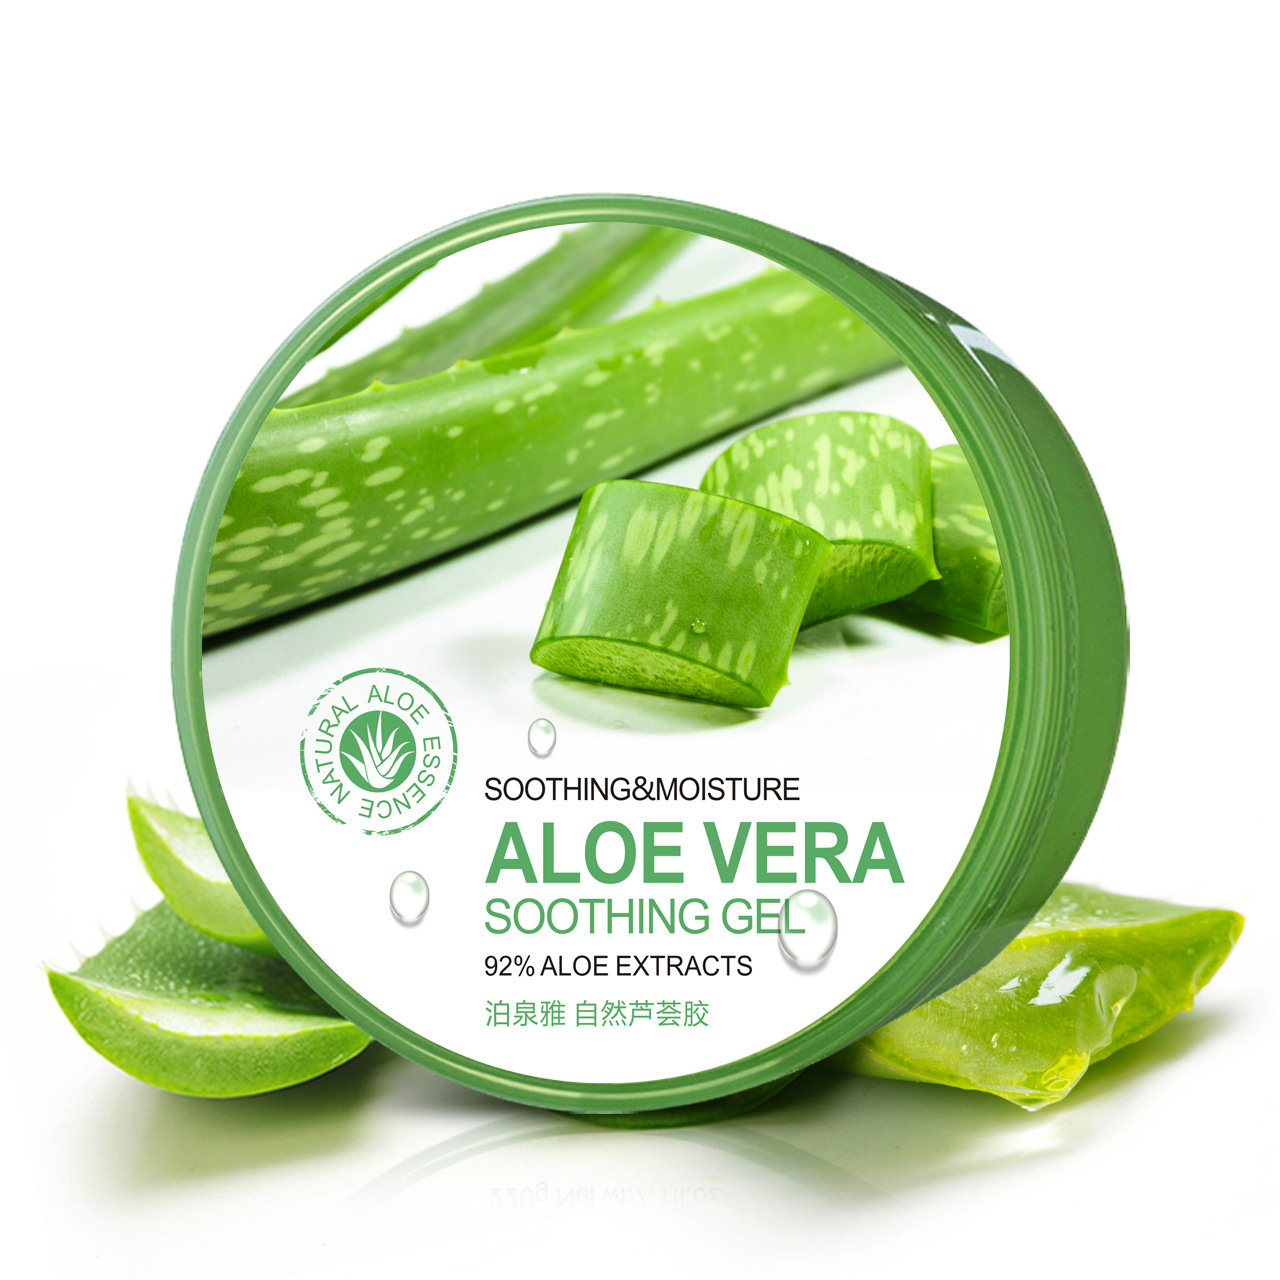 BIOAOUA Natural Aloe Vera Gel Hydrating Moisturizer 220g